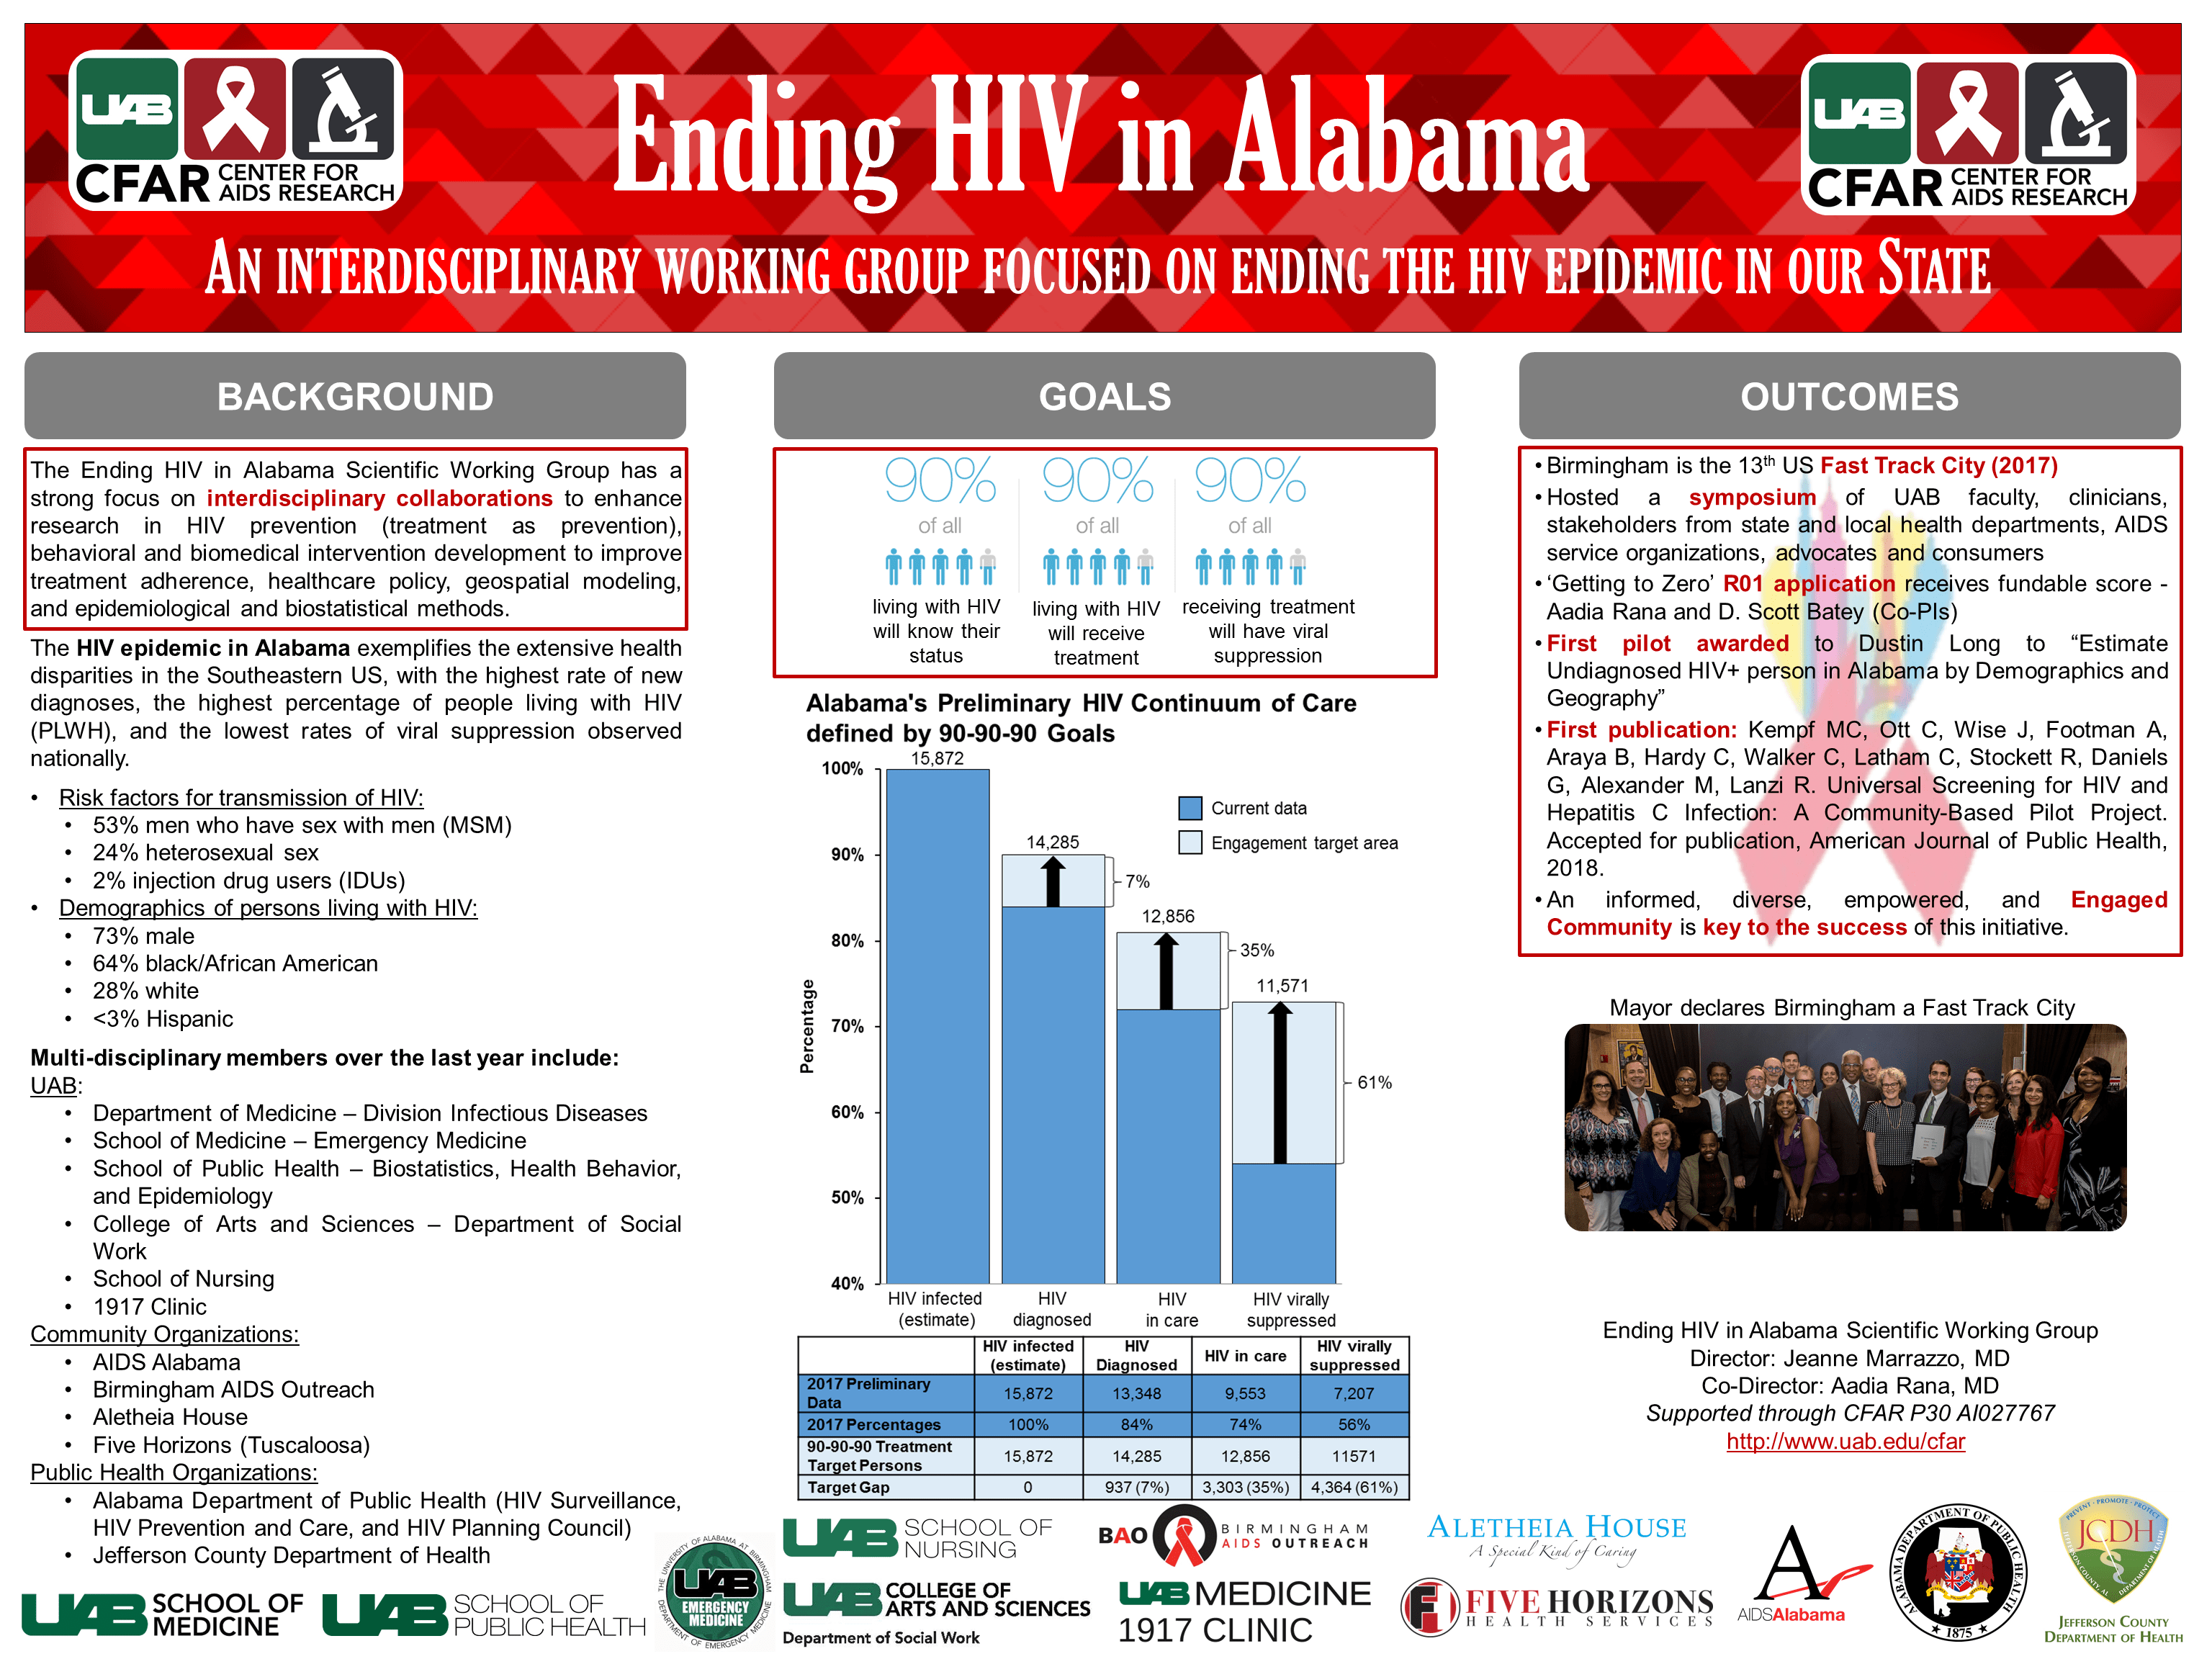 CFAR Ending HIV in Alabama Poster final min